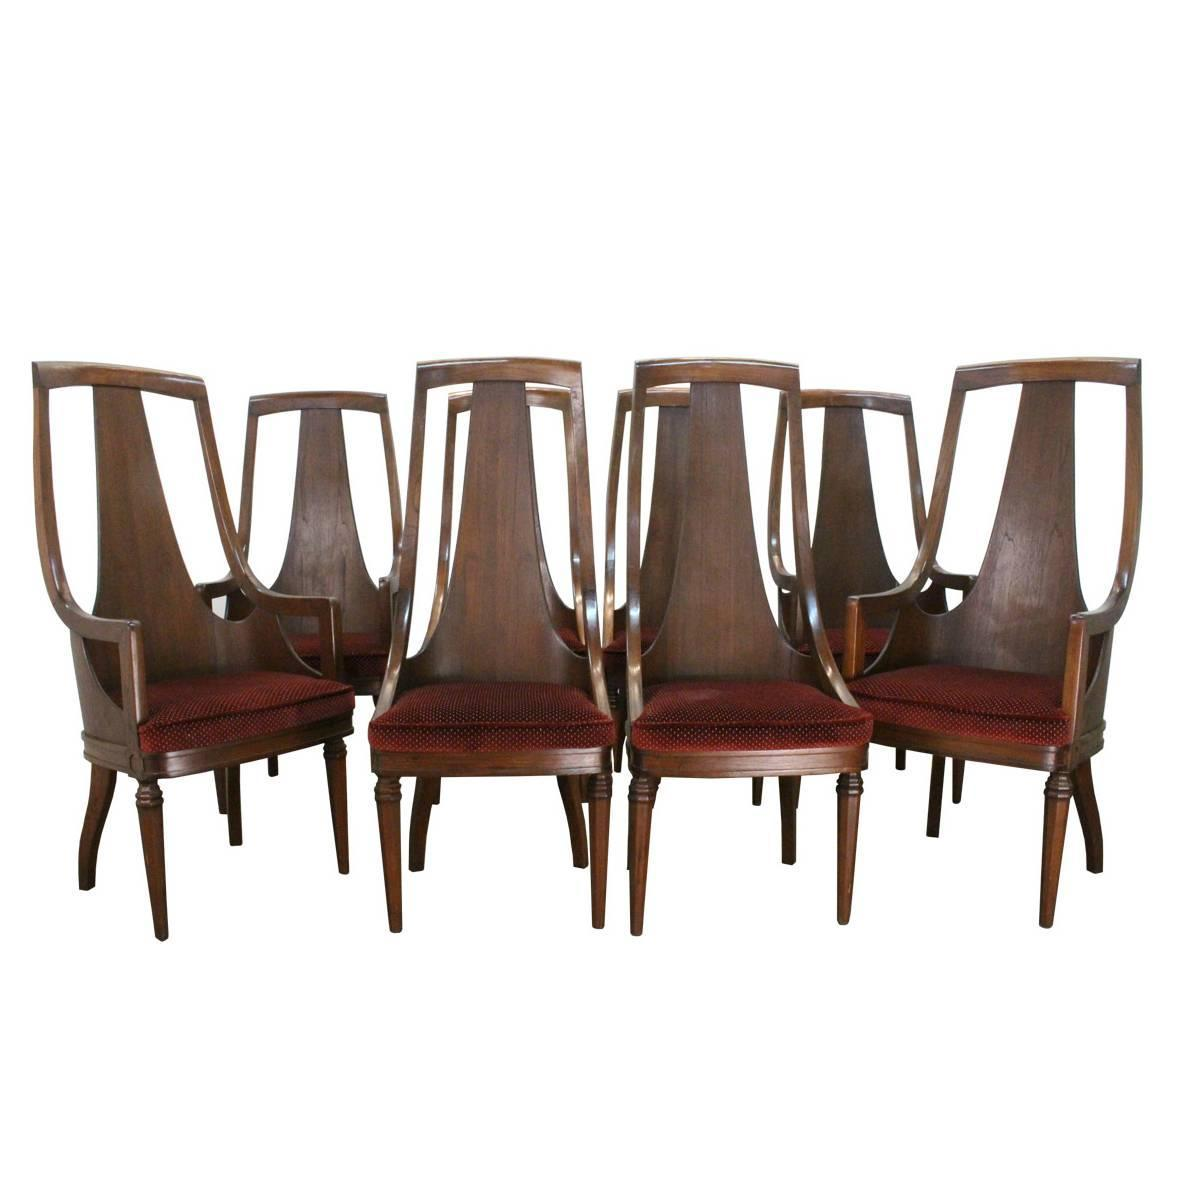 set of 8 high back mid century walnut dining chairs at 1stdibs